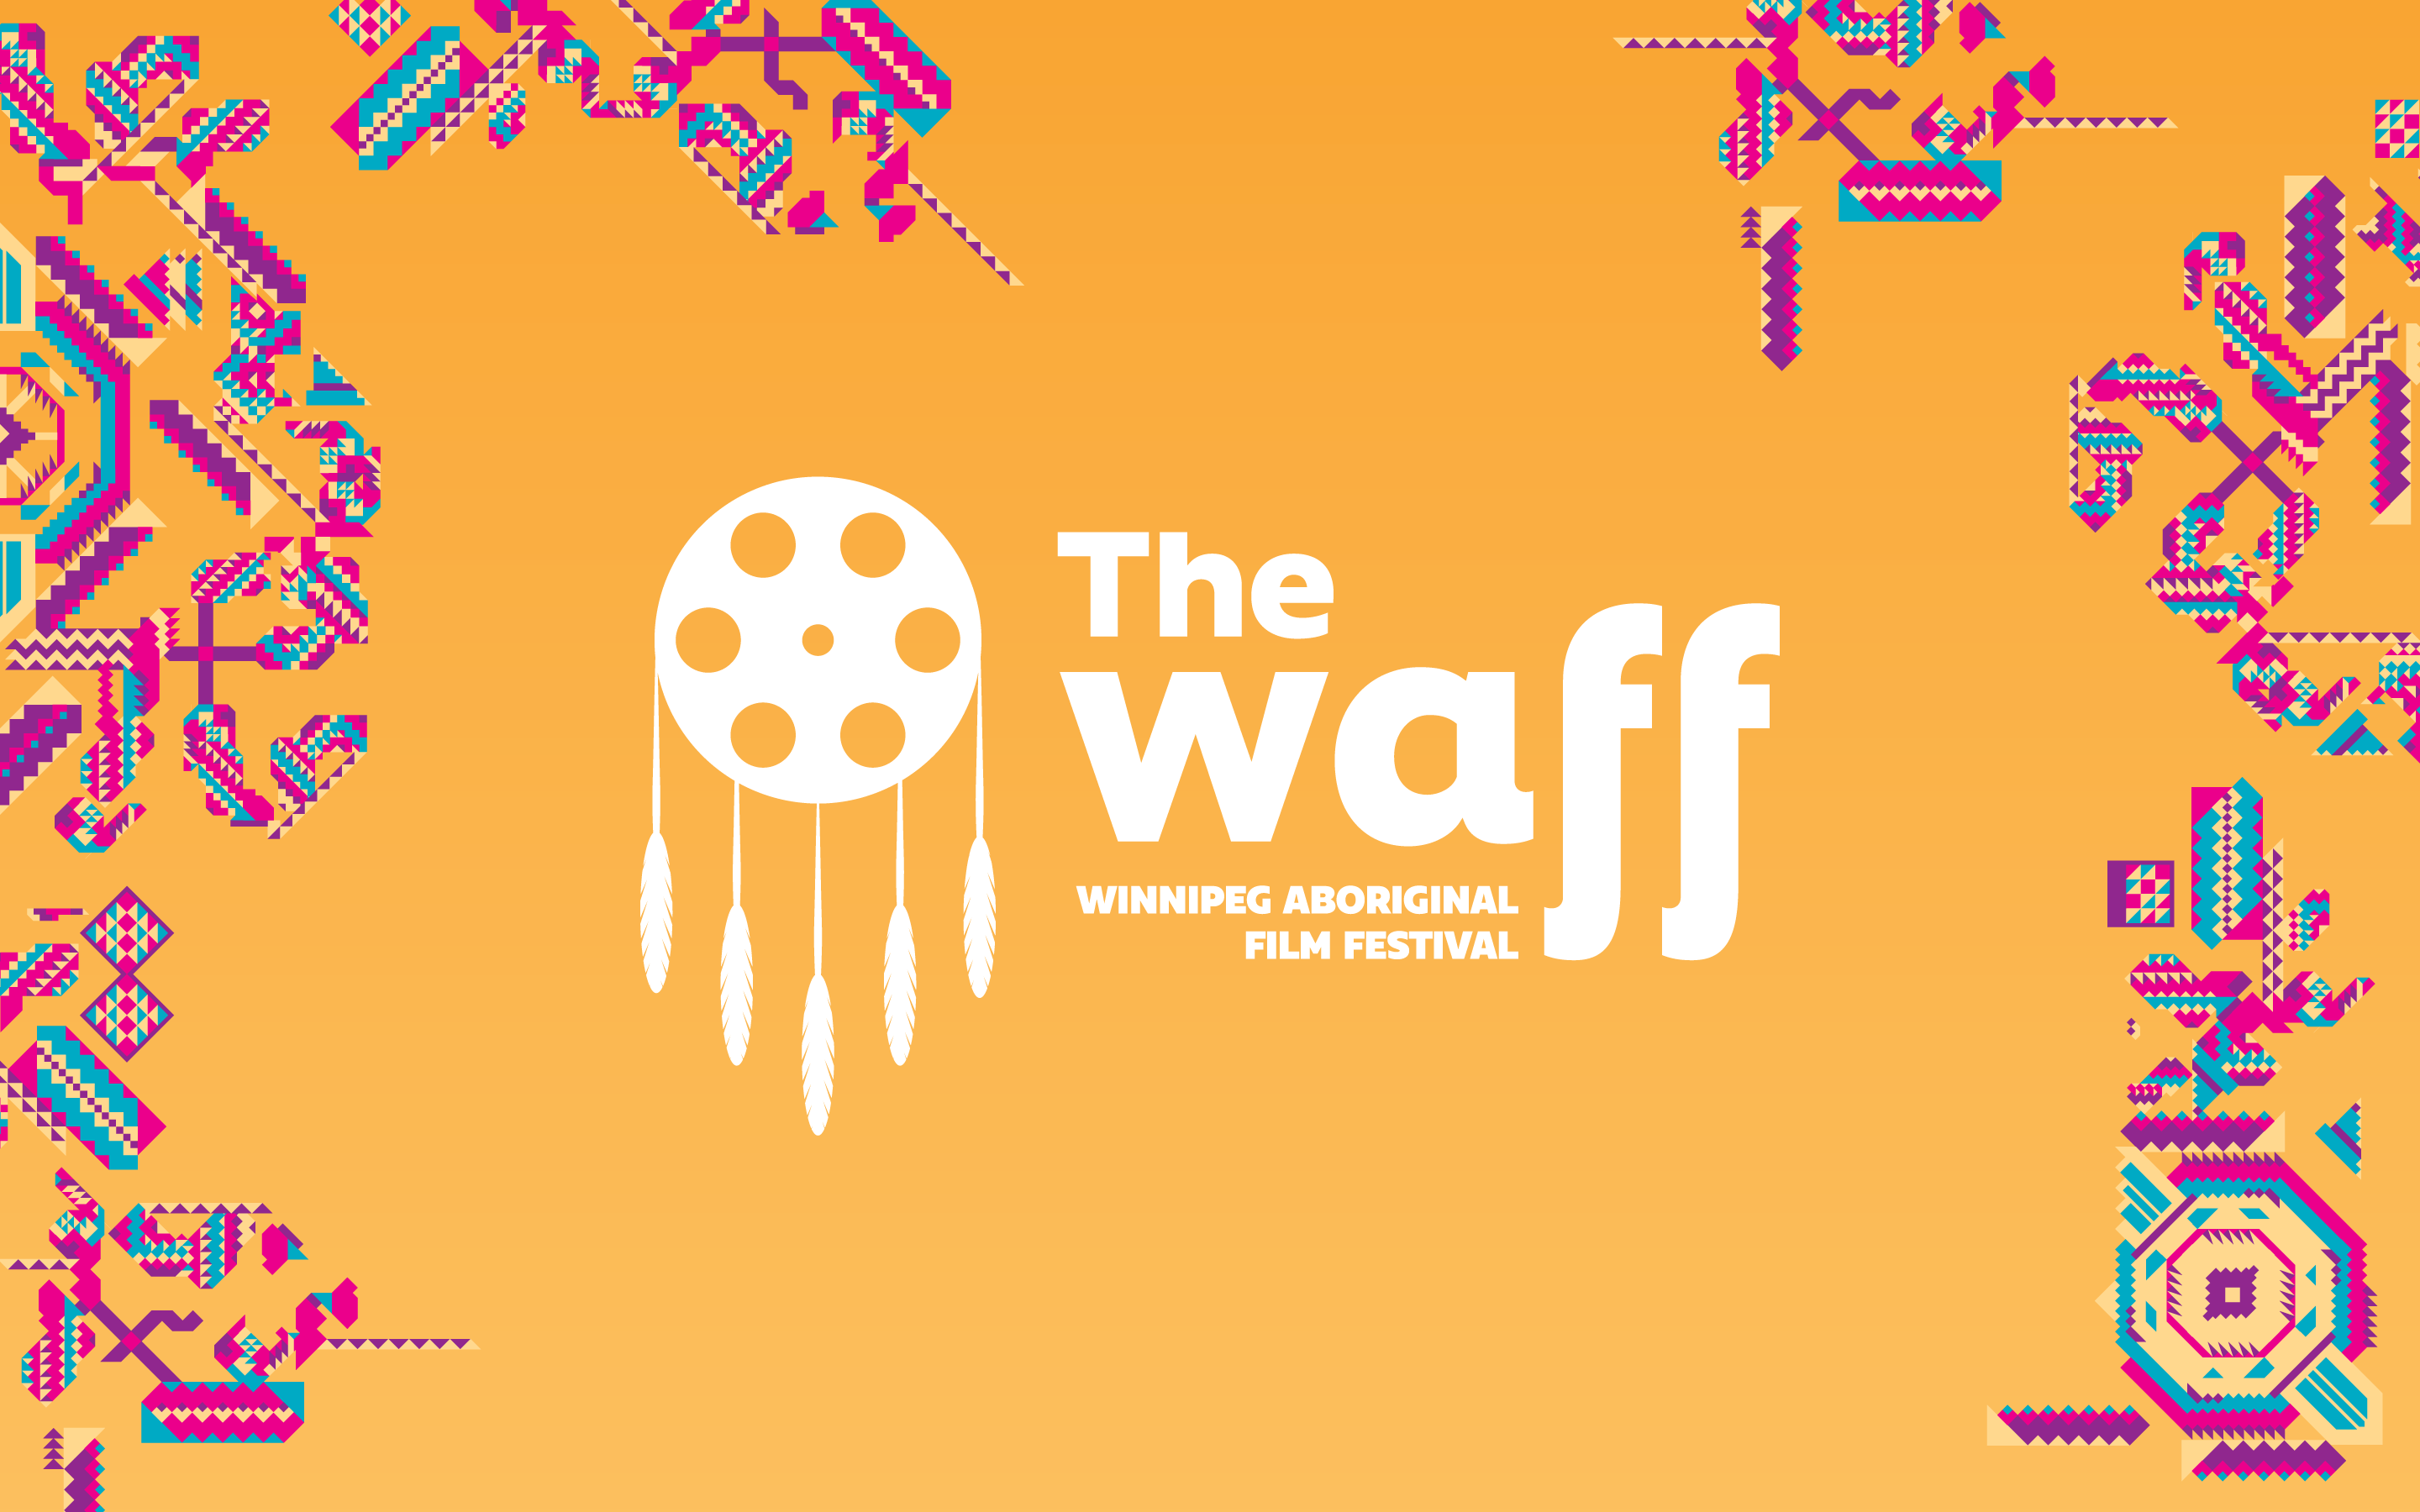 Photo of the proposed logo for the Winnipeg Aboriginal Film Festival (The Waff) and supporting theme graphics